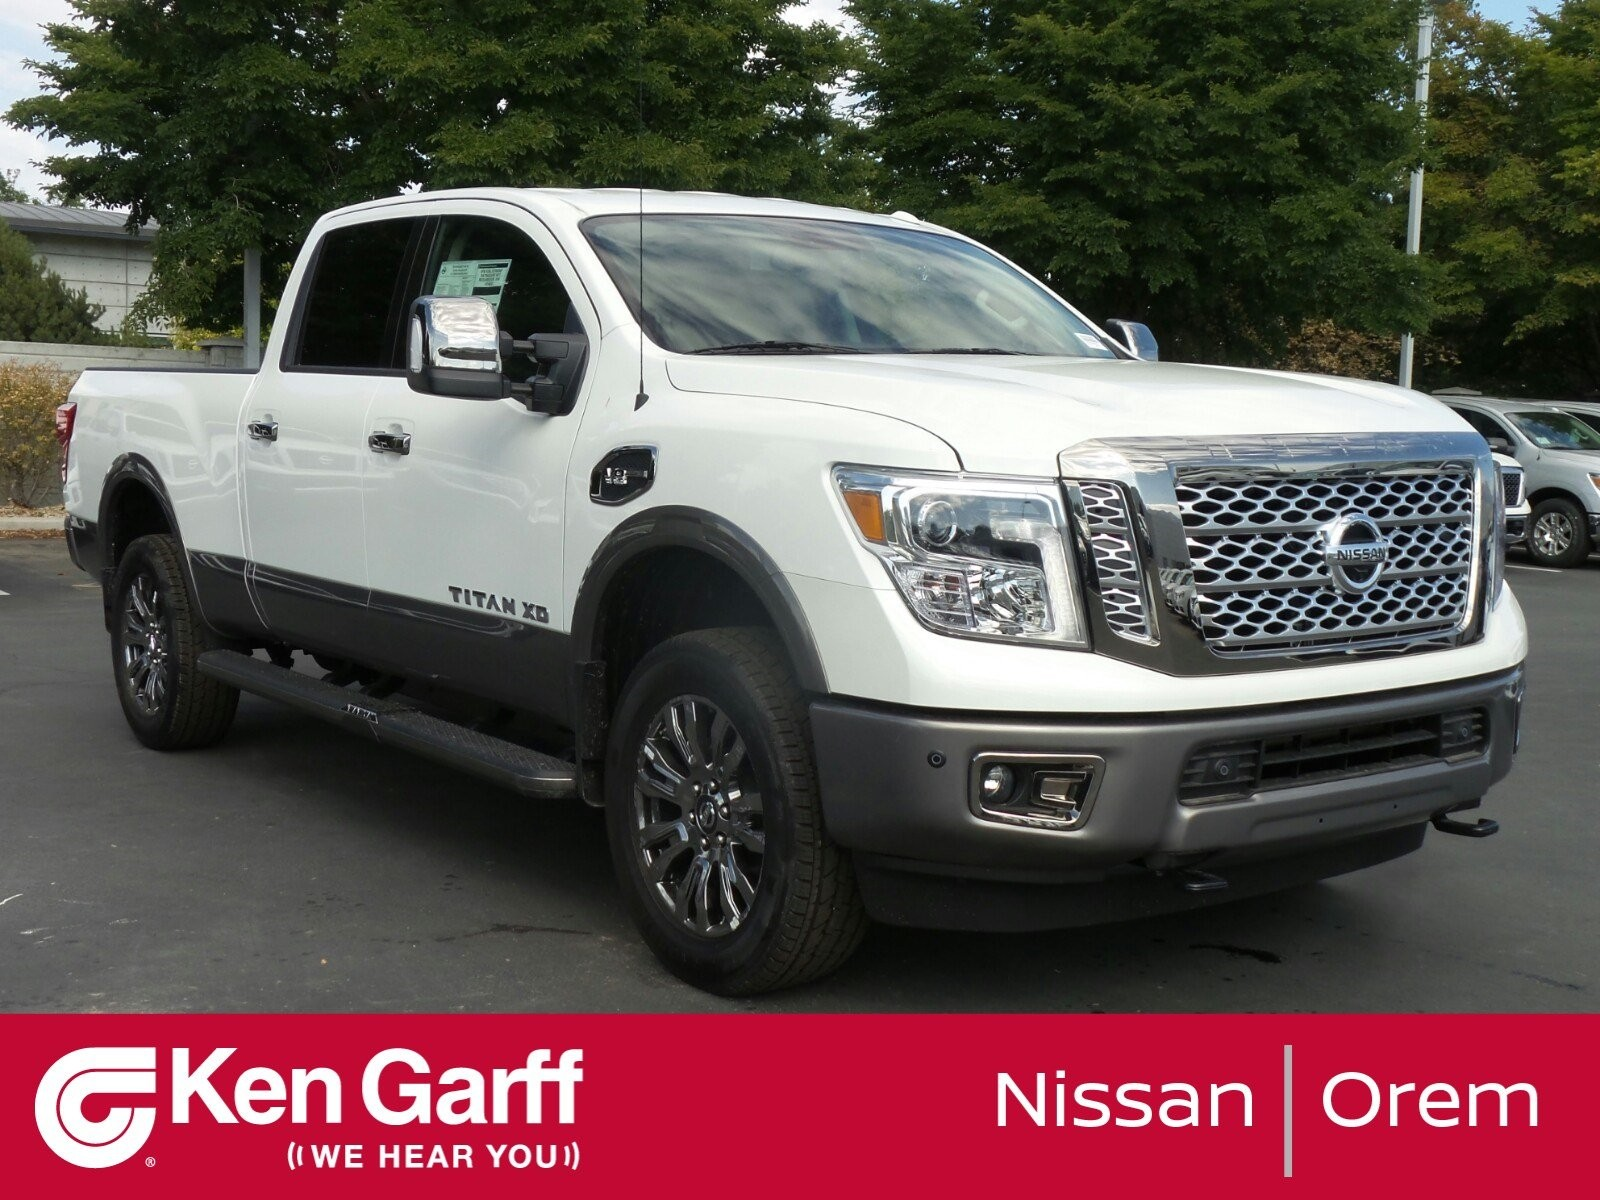 2006 Nissan Titan Parts Diagram New 2018 Nissan Titan Xd Platinum Reserve Crew Cab Pickup 2n Of 2006 Nissan Titan Parts Diagram New 2018 Nissan Titan Pro 4x Crew Cab Pickup In Salt Lake City